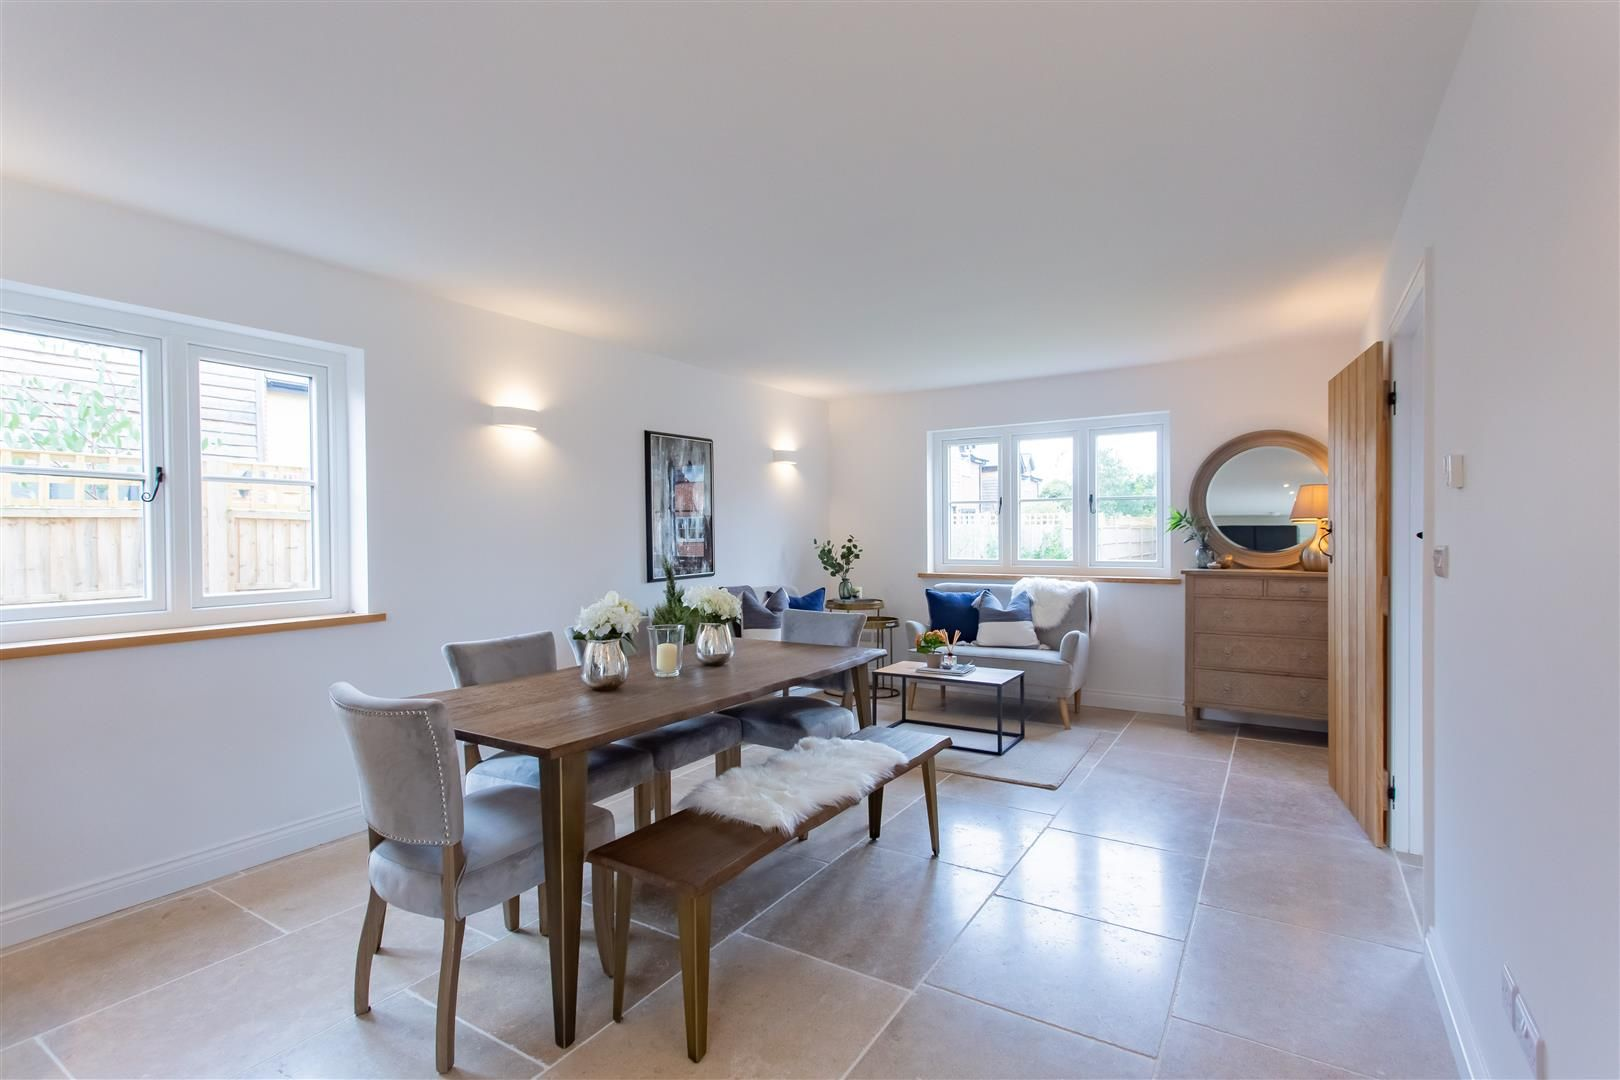 4 bed detached for sale in Marden  - Property Image 3